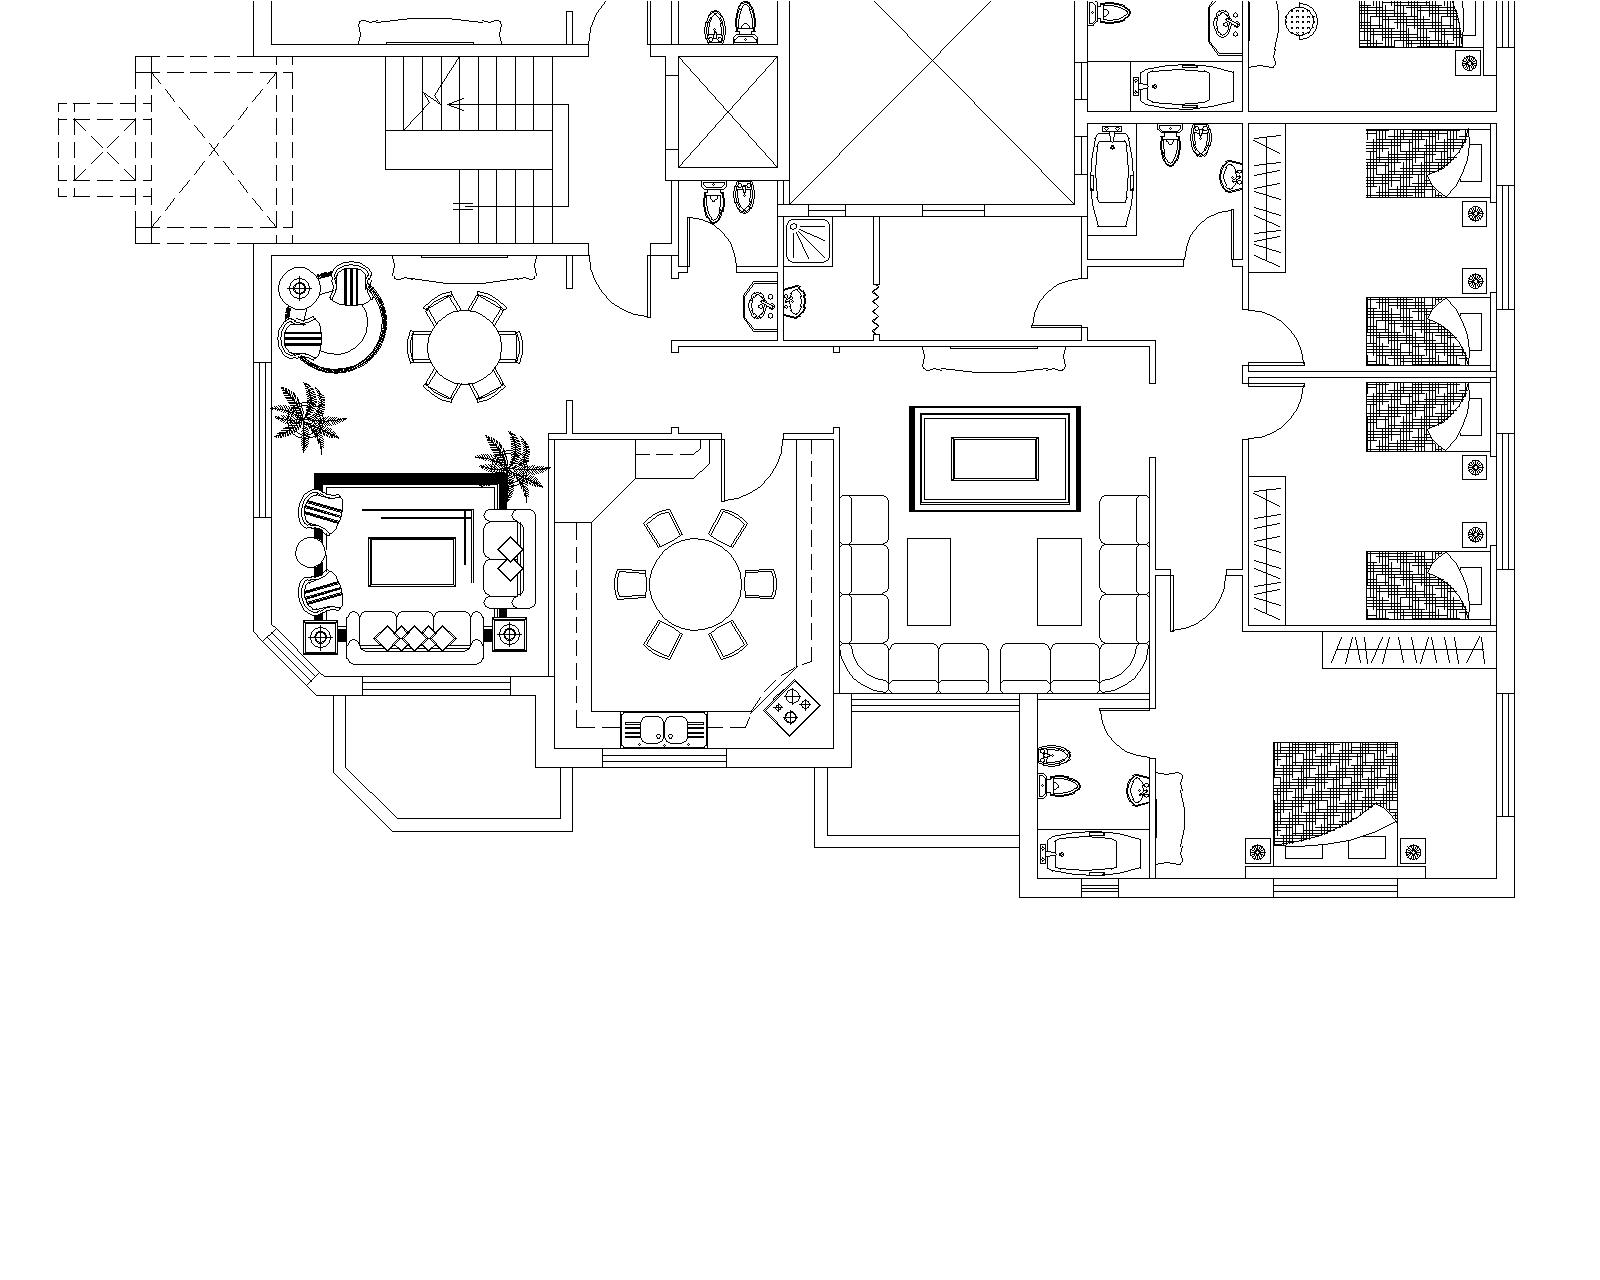 Apartments Building Typical Floor Plan Cad Files Dwg